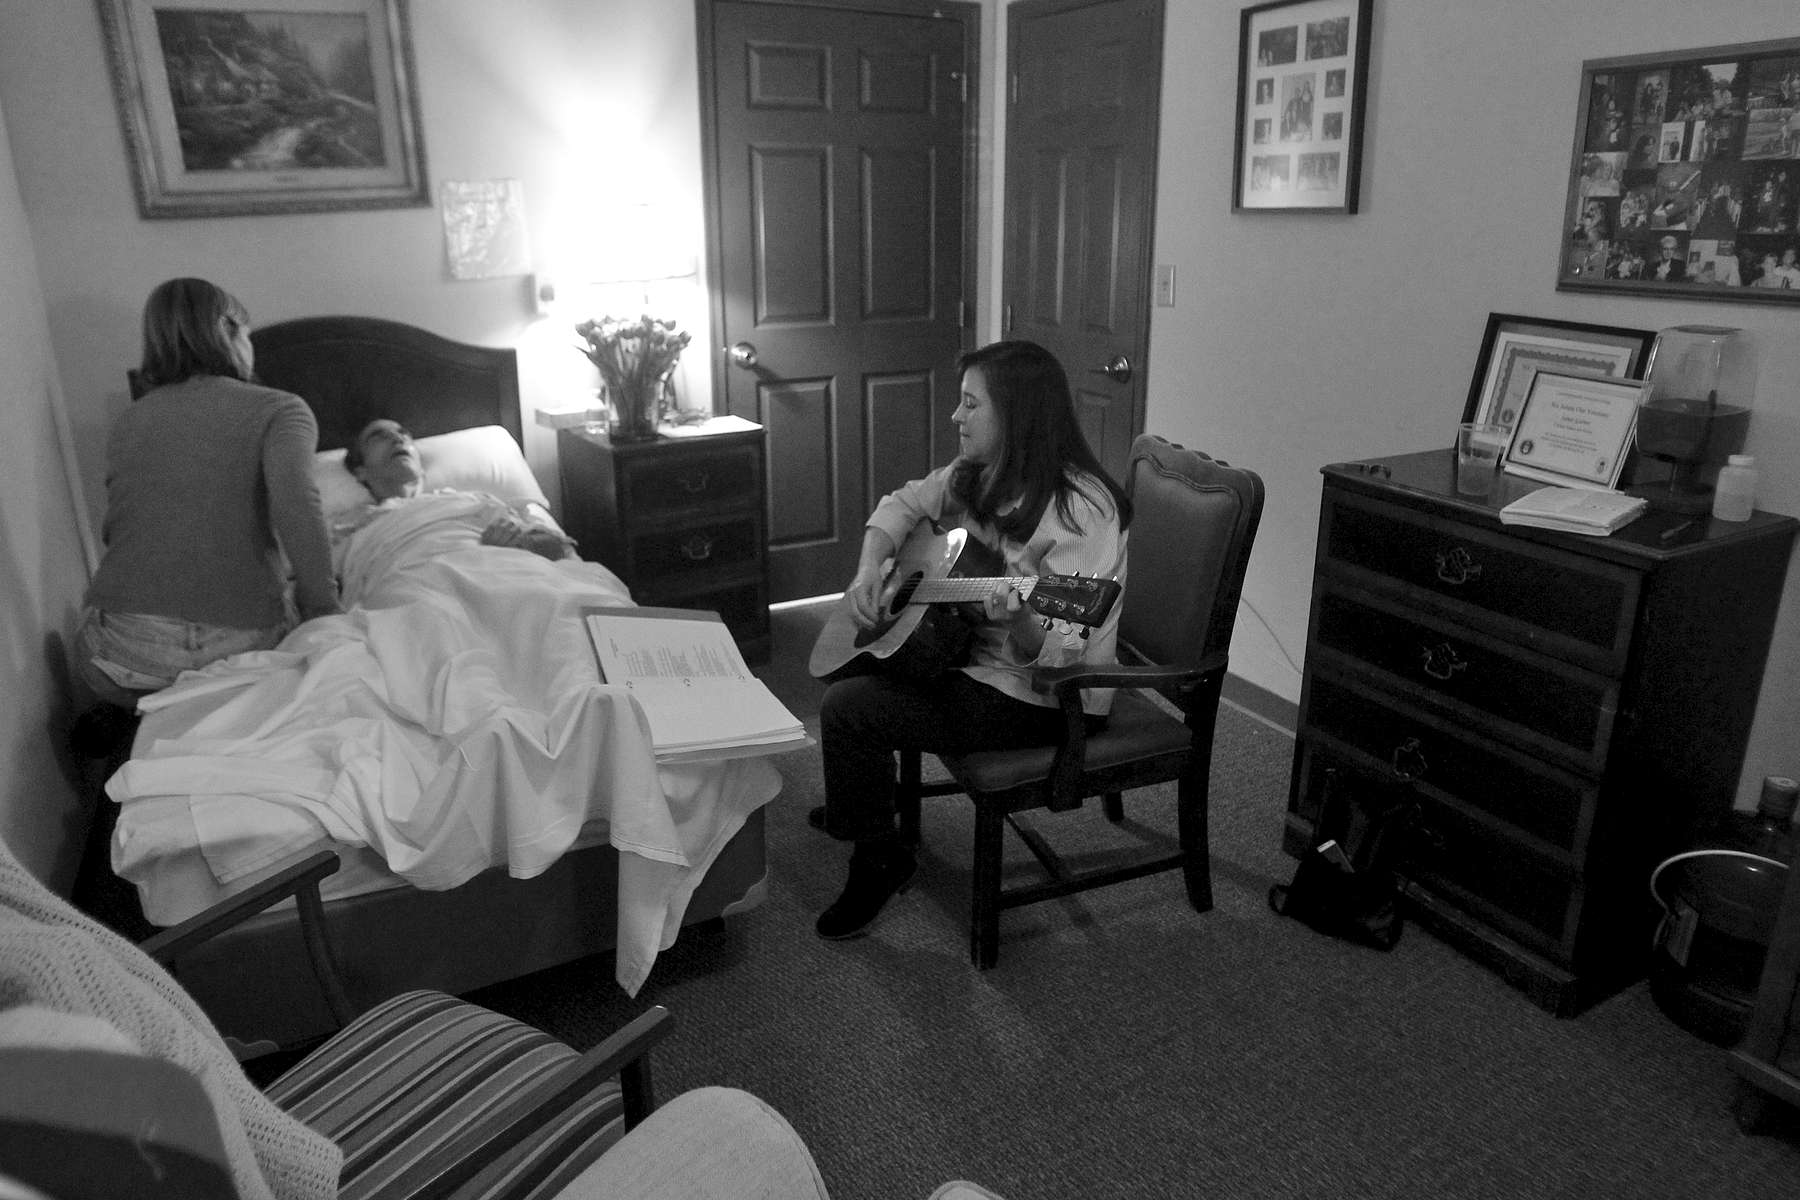 Shelly Simonds plays guitar for Jim as he lays in bed at Commonwealth Assisted Living in Hampton Monday afternoon March 28, 2016. Jim died from Alzheimer's April 2, 2016. Jim was diagnosed by the National Institute of Health in 2011 with {quote}mild cognitive impairment,{quote} the precursor to early-onset Alzheimer's disease. The genetically pre-determined disease has devastated his family--his mother died of the disease at age 61, his older brother at 52.